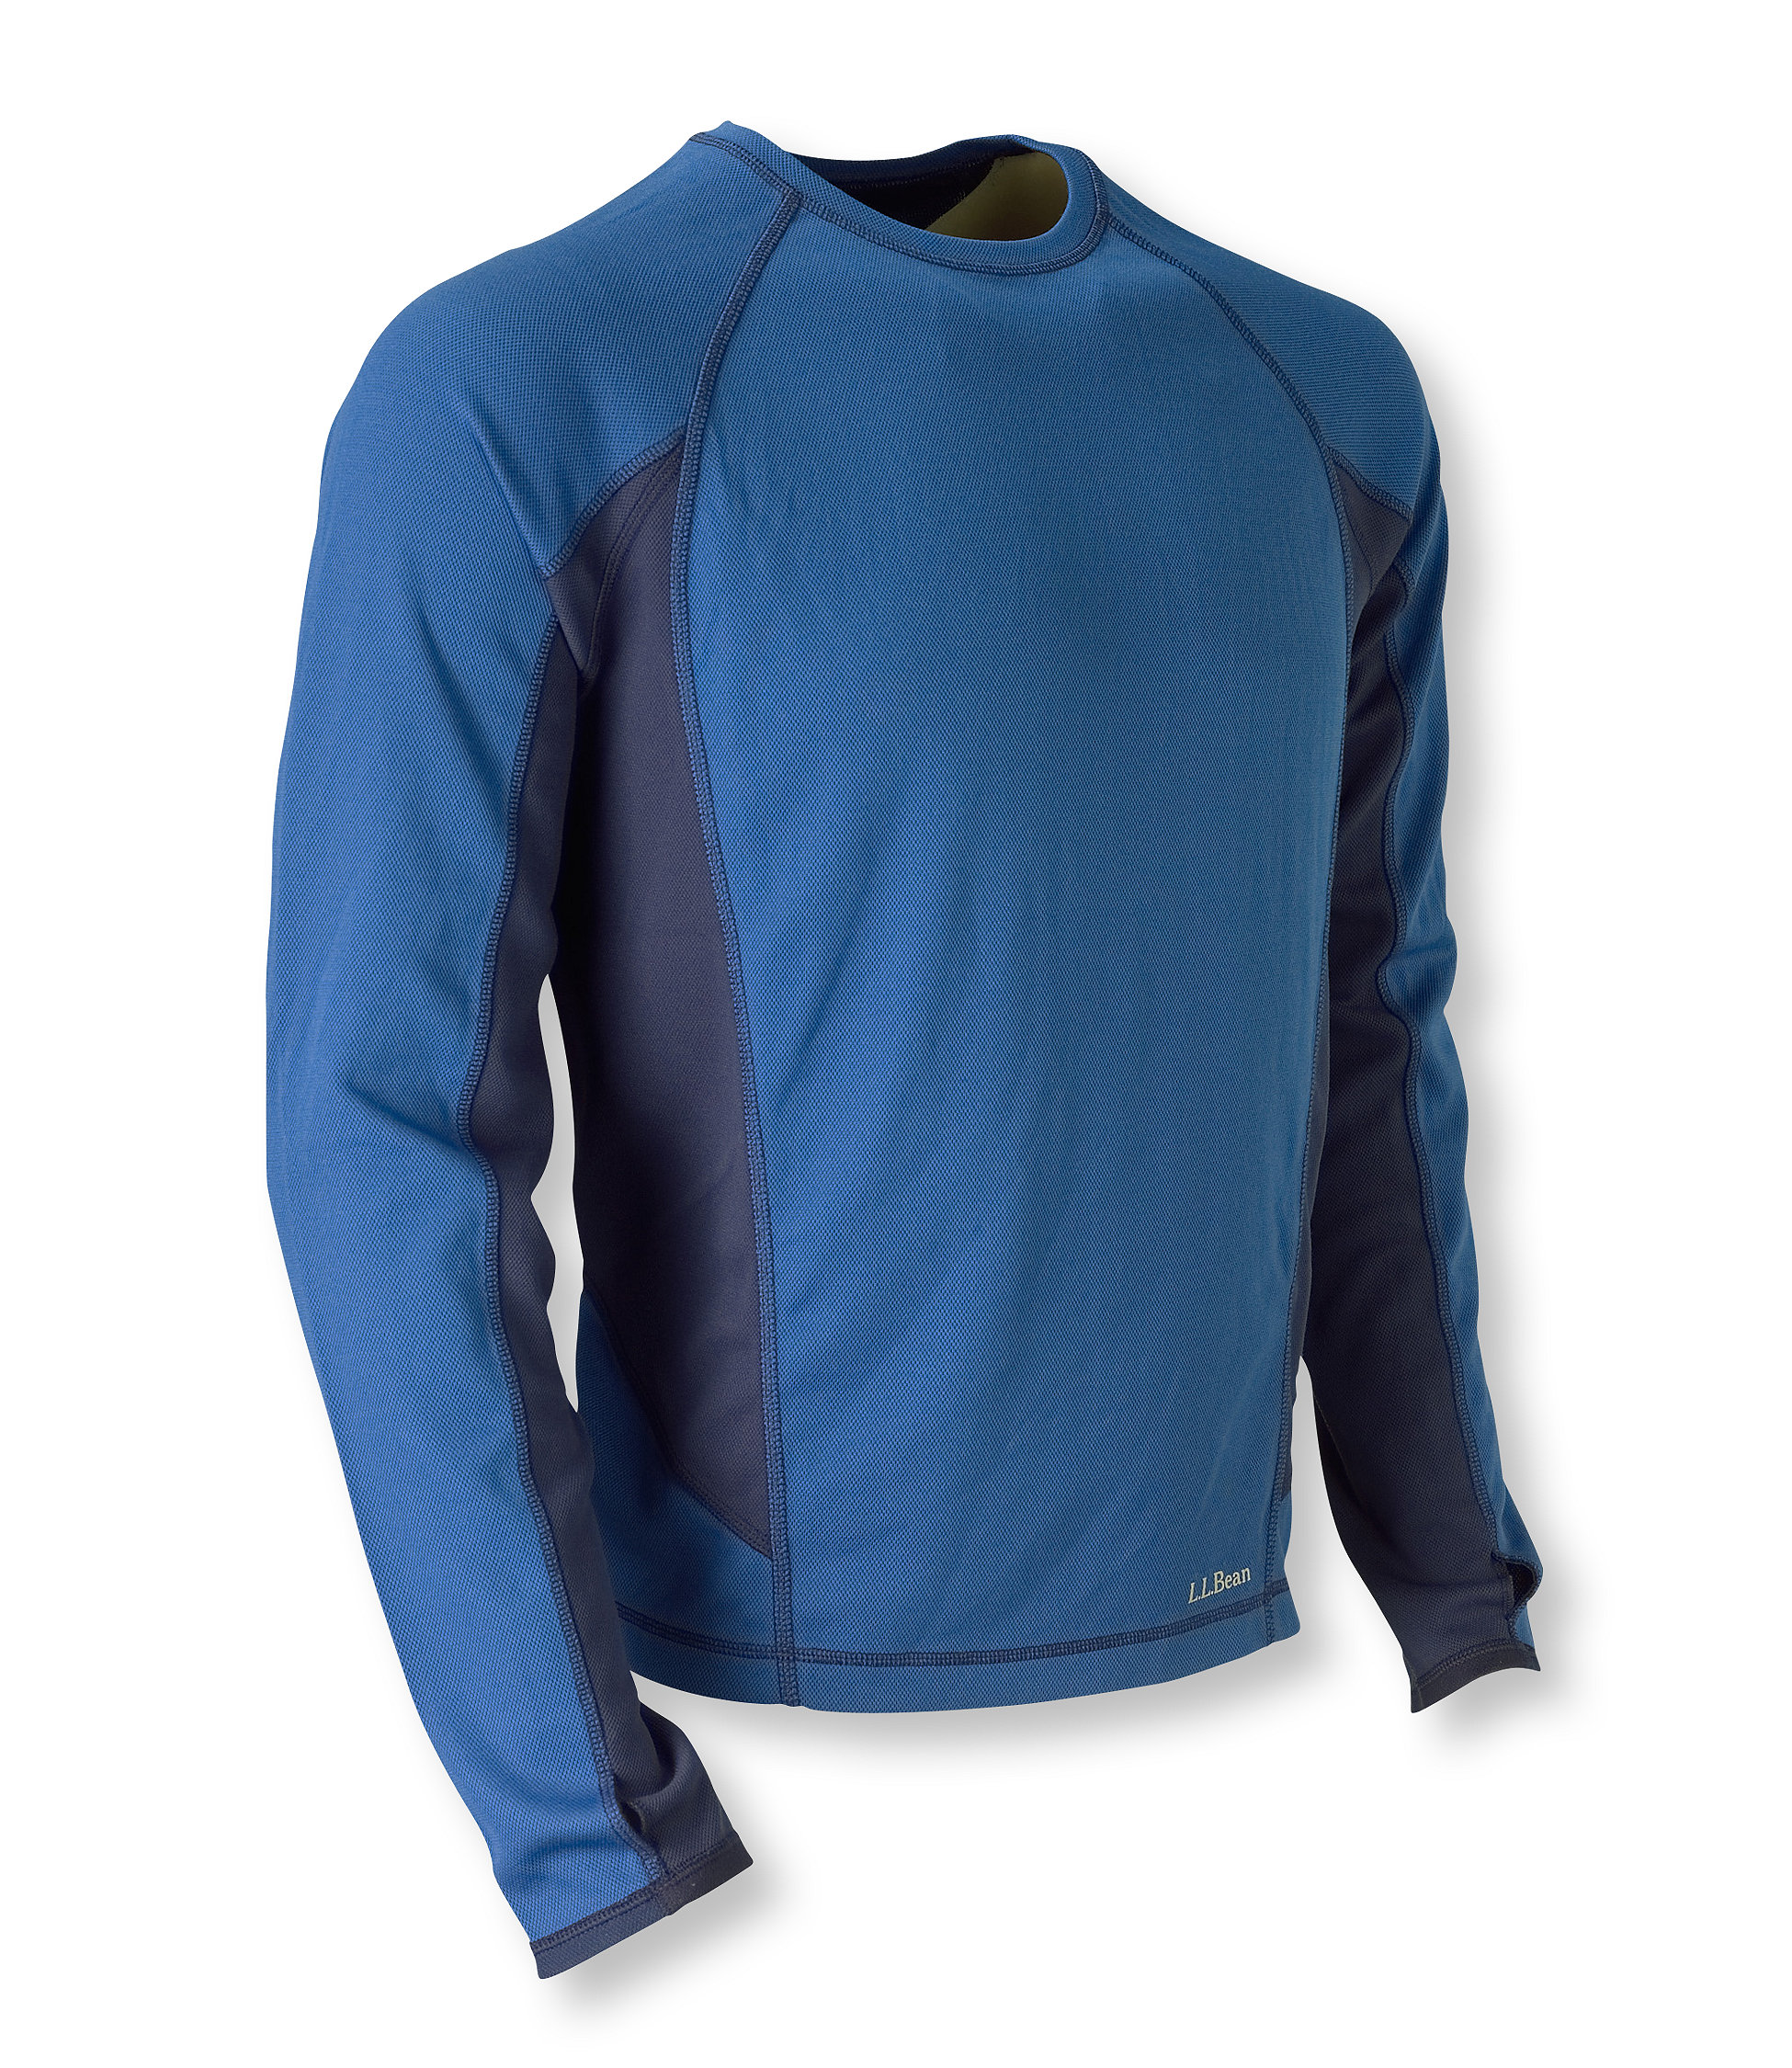 L.L.Bean Polartec Power Dry Base Layer, Crew Midweight